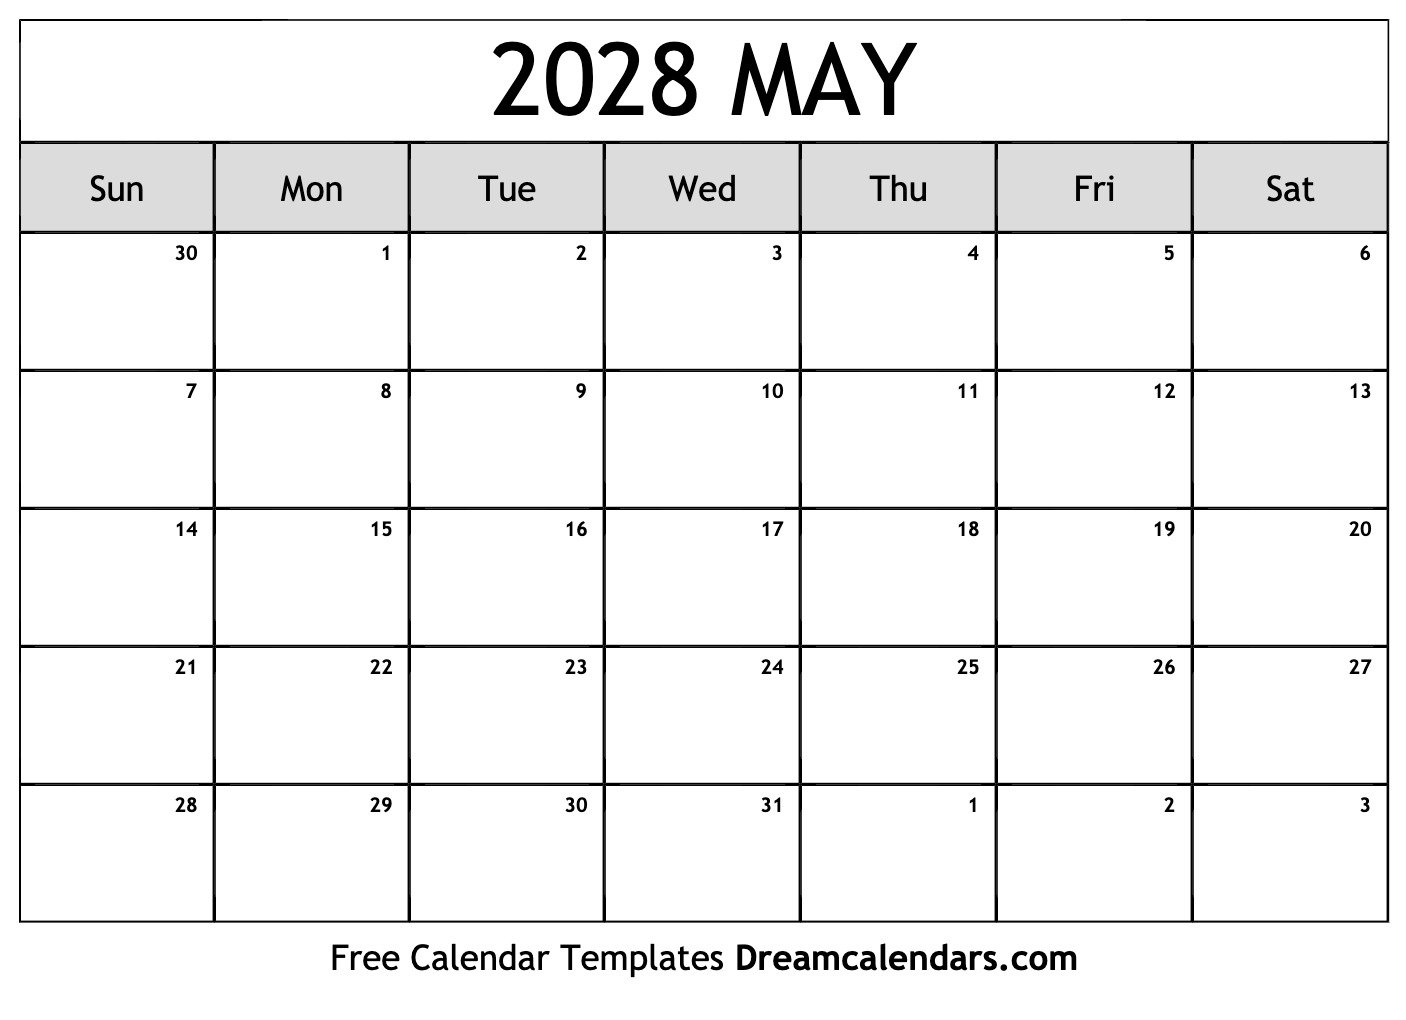 Printable May 2028 Calendar Make Of Copy Of Blank Monthly Calendar 8 1/2 By 11